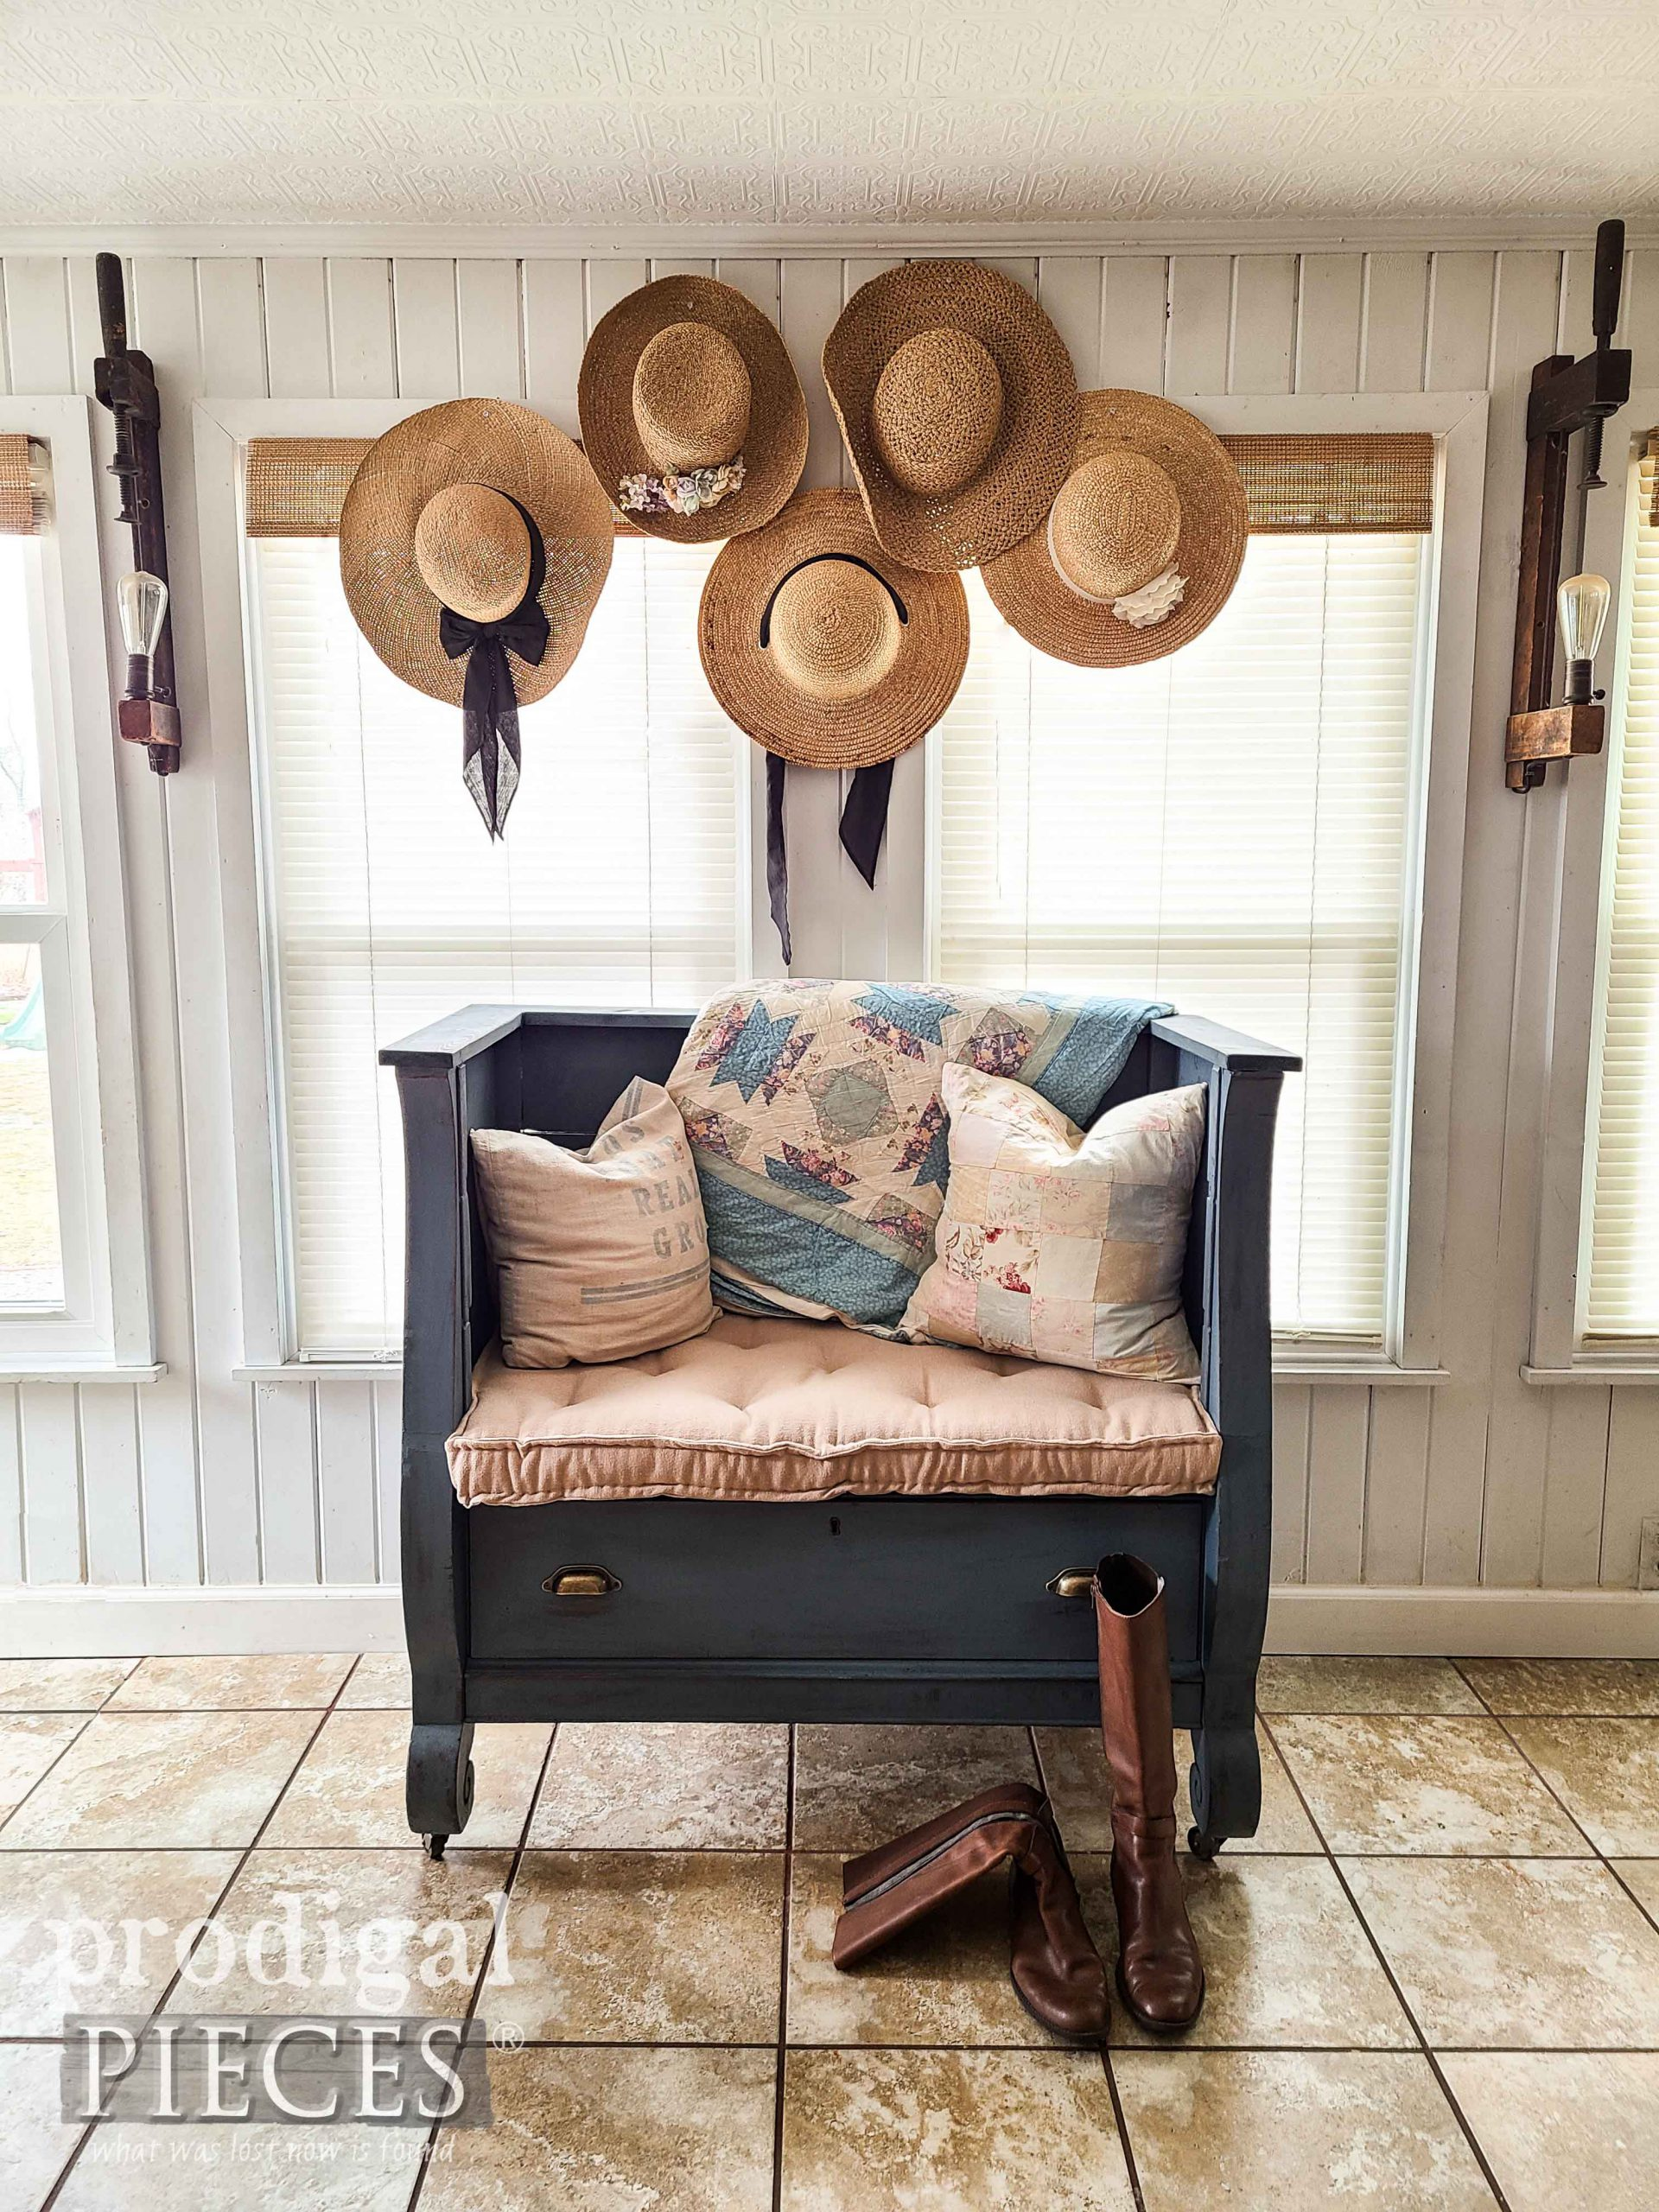 Repurposed Antique Chest into Bench by Larissa of Prodigal Pieces | shop.prodigalpieces.com #prodigalpieces